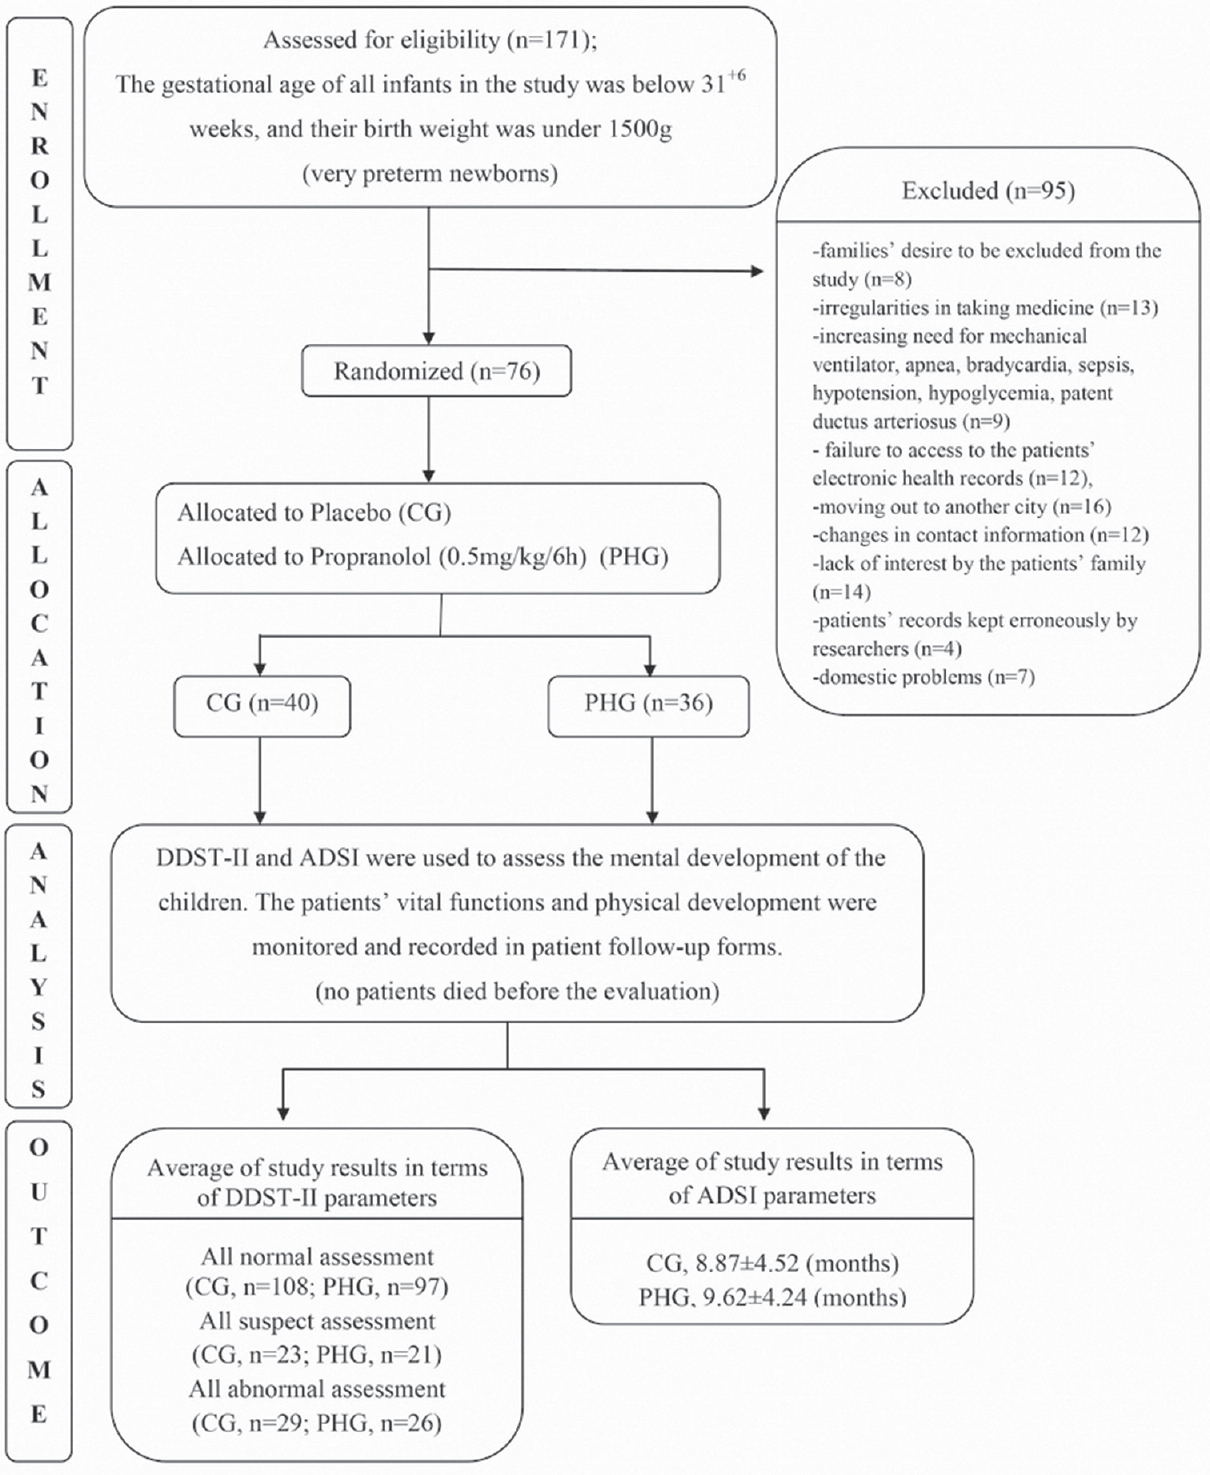 Figure 1: Consolidated standards of reporting trials flow diagram, enrollment, randomization, and analysis of the 171 study very preterm infants